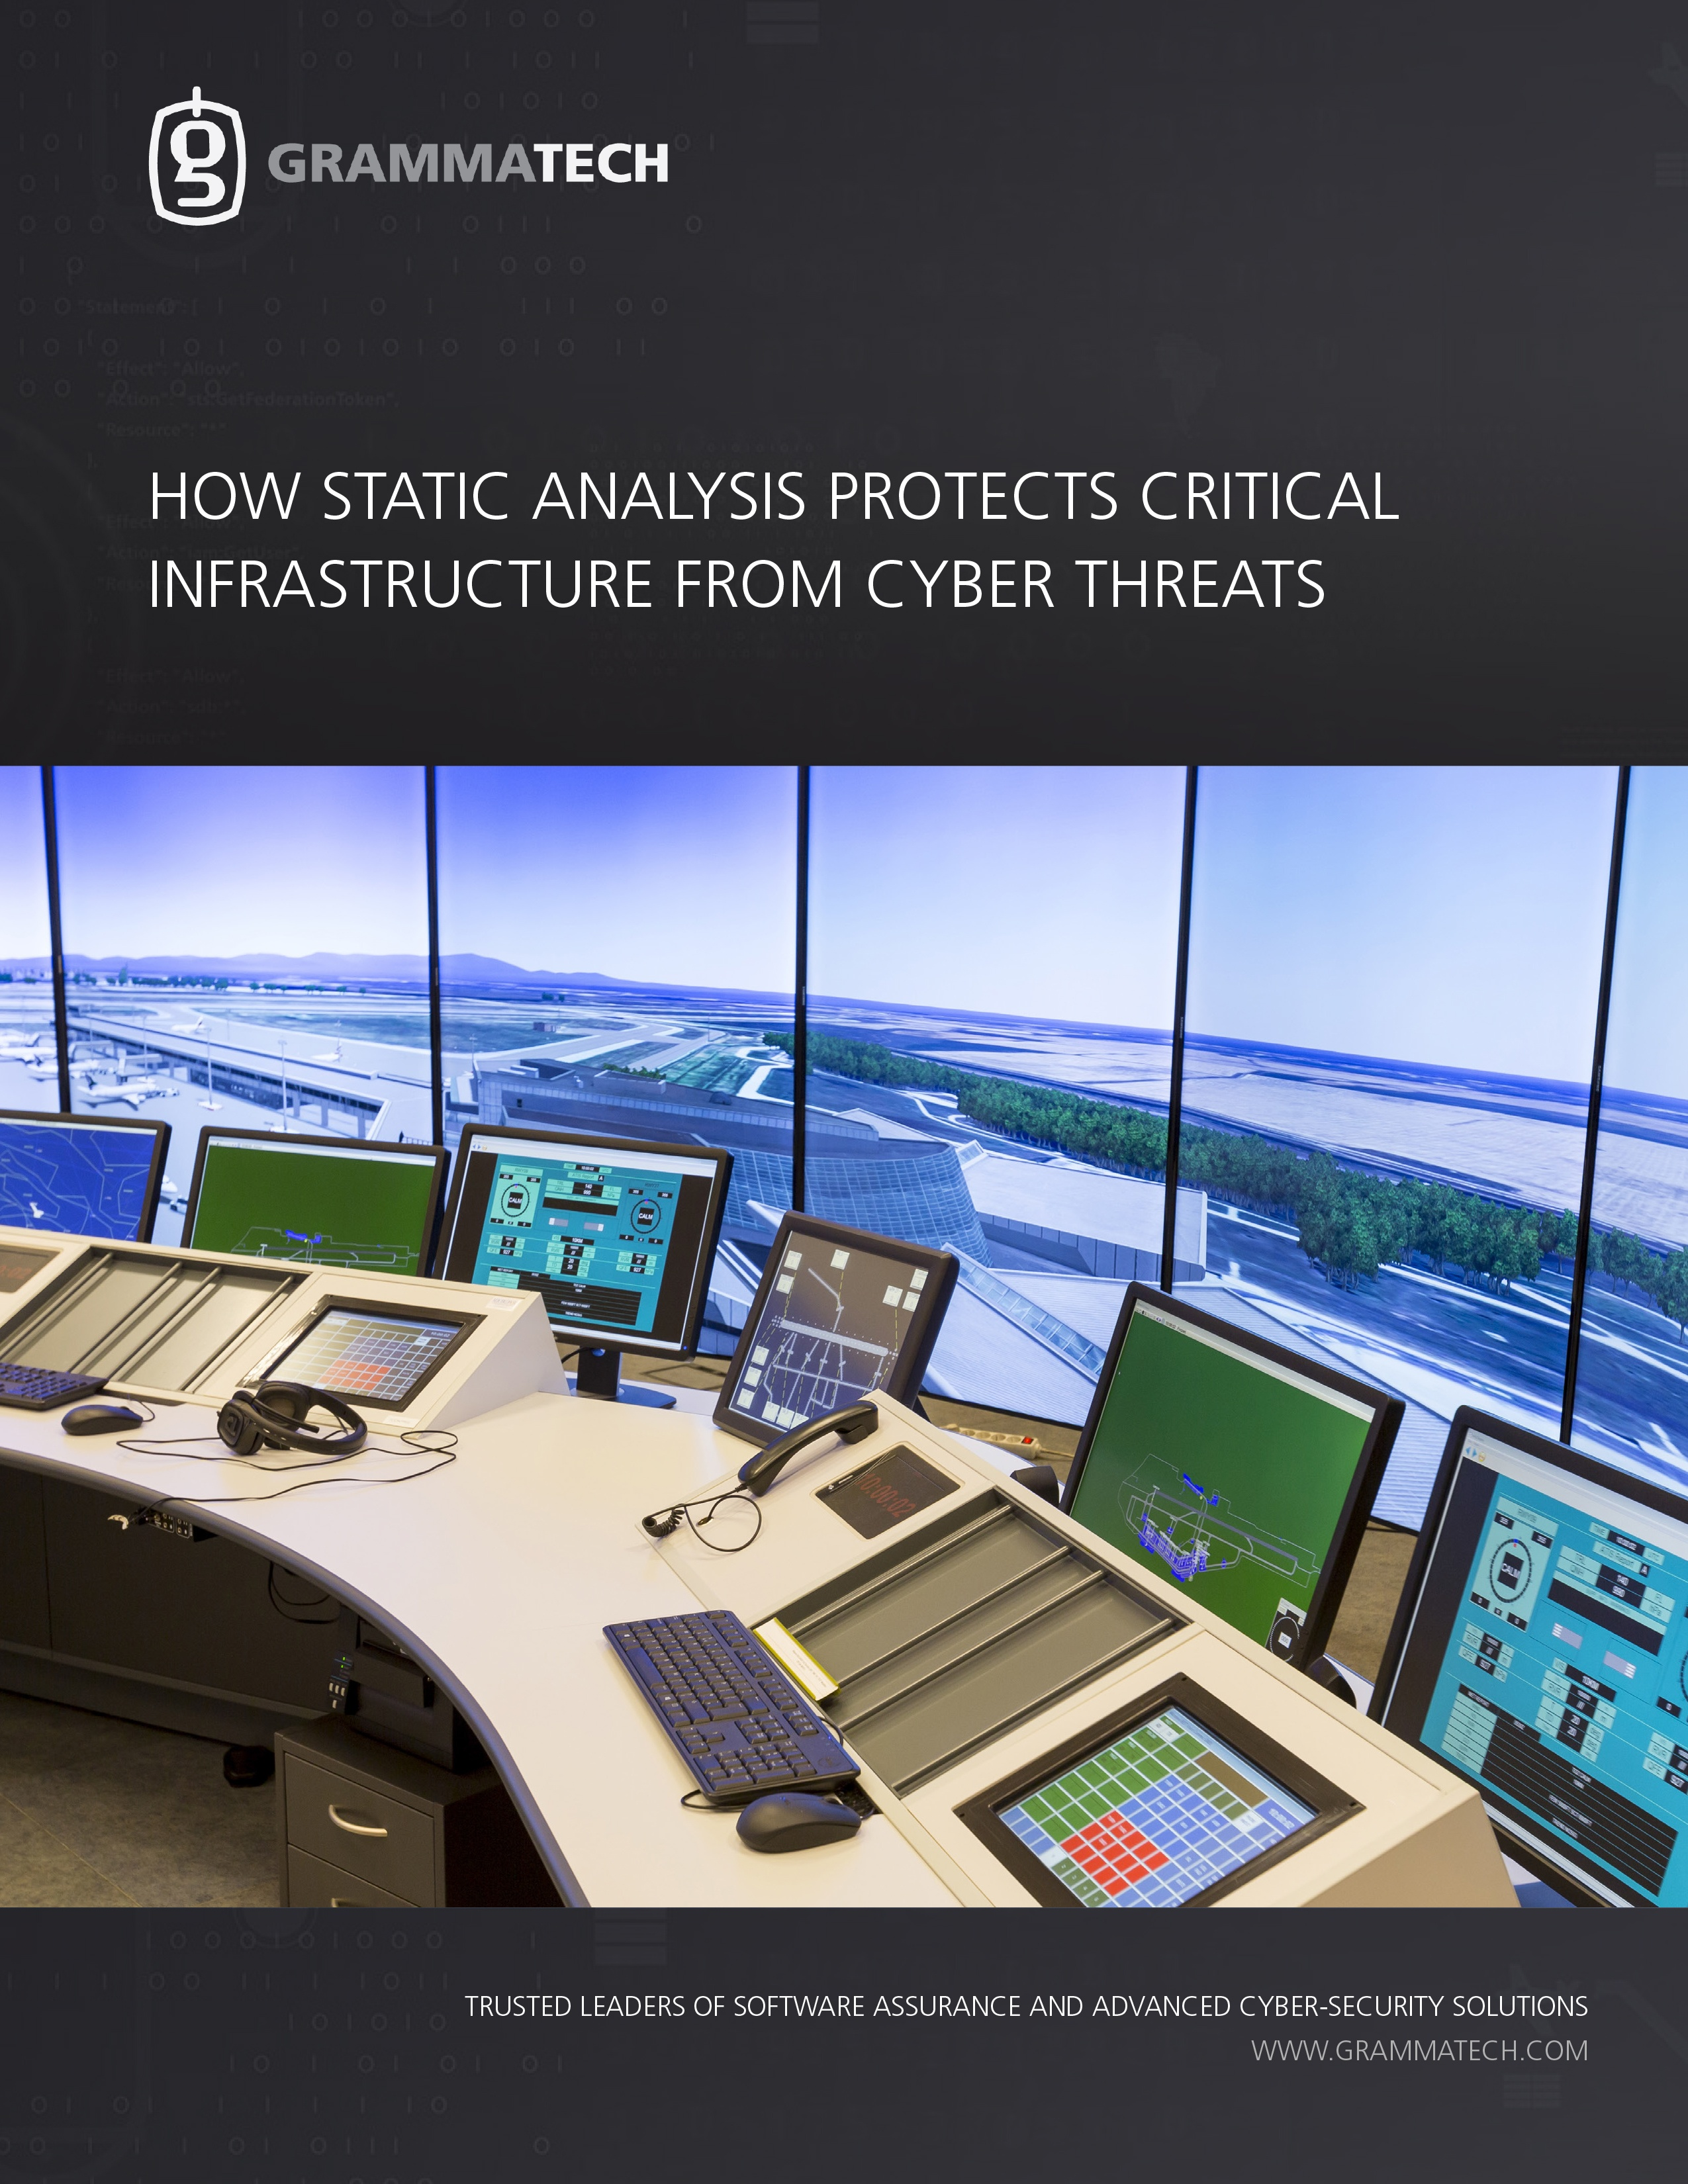 How Static Analysis Protect Critical Infrastructure from Cyber Threats